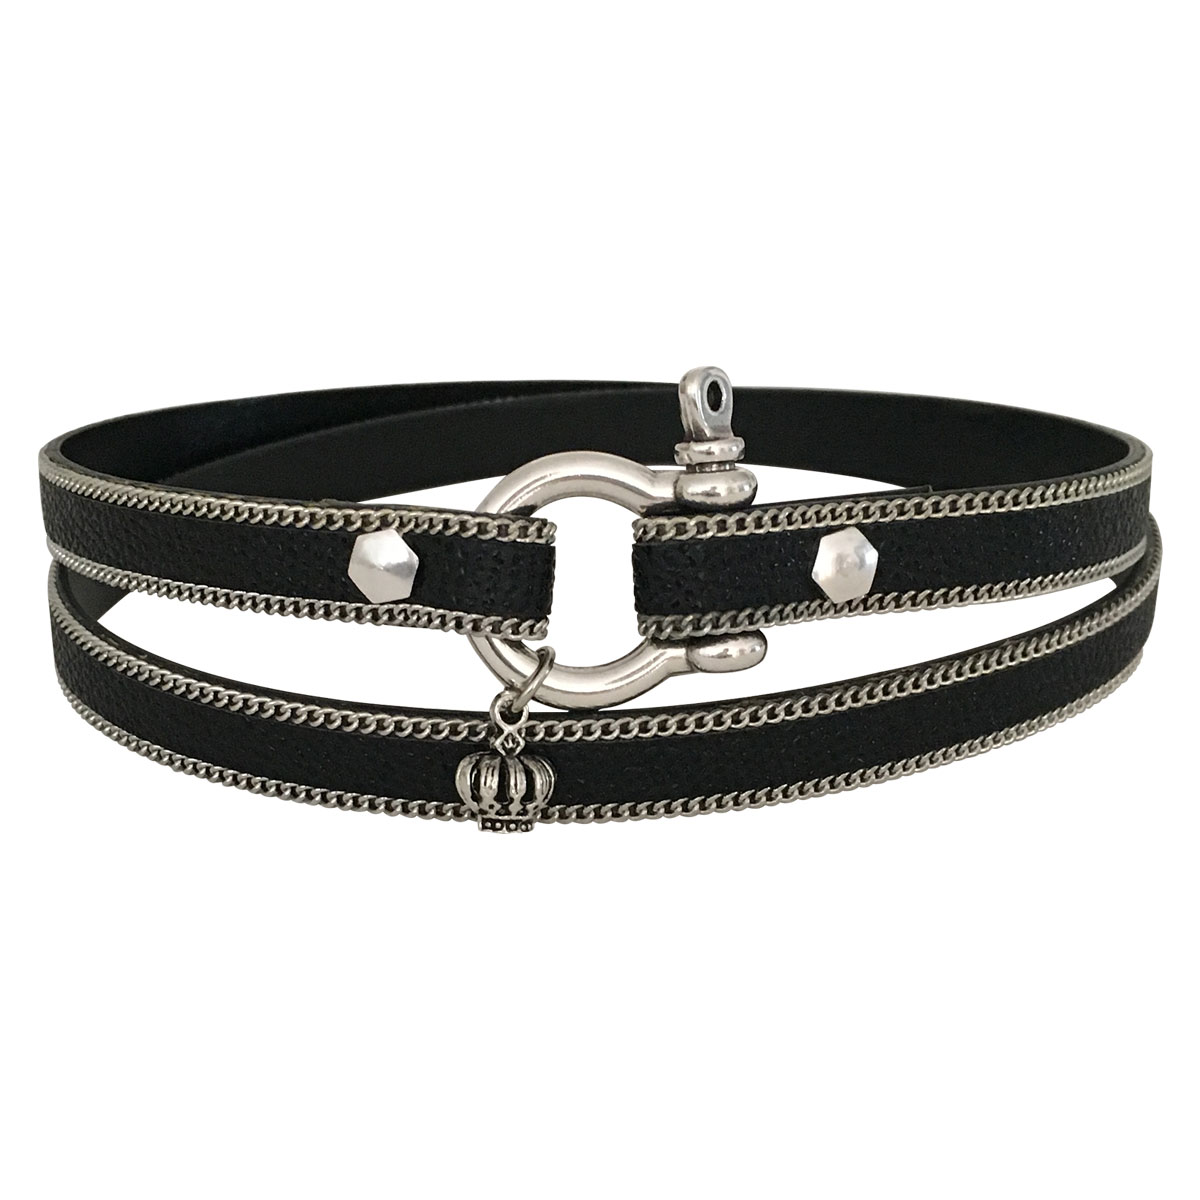 Signature Choker With Clasp